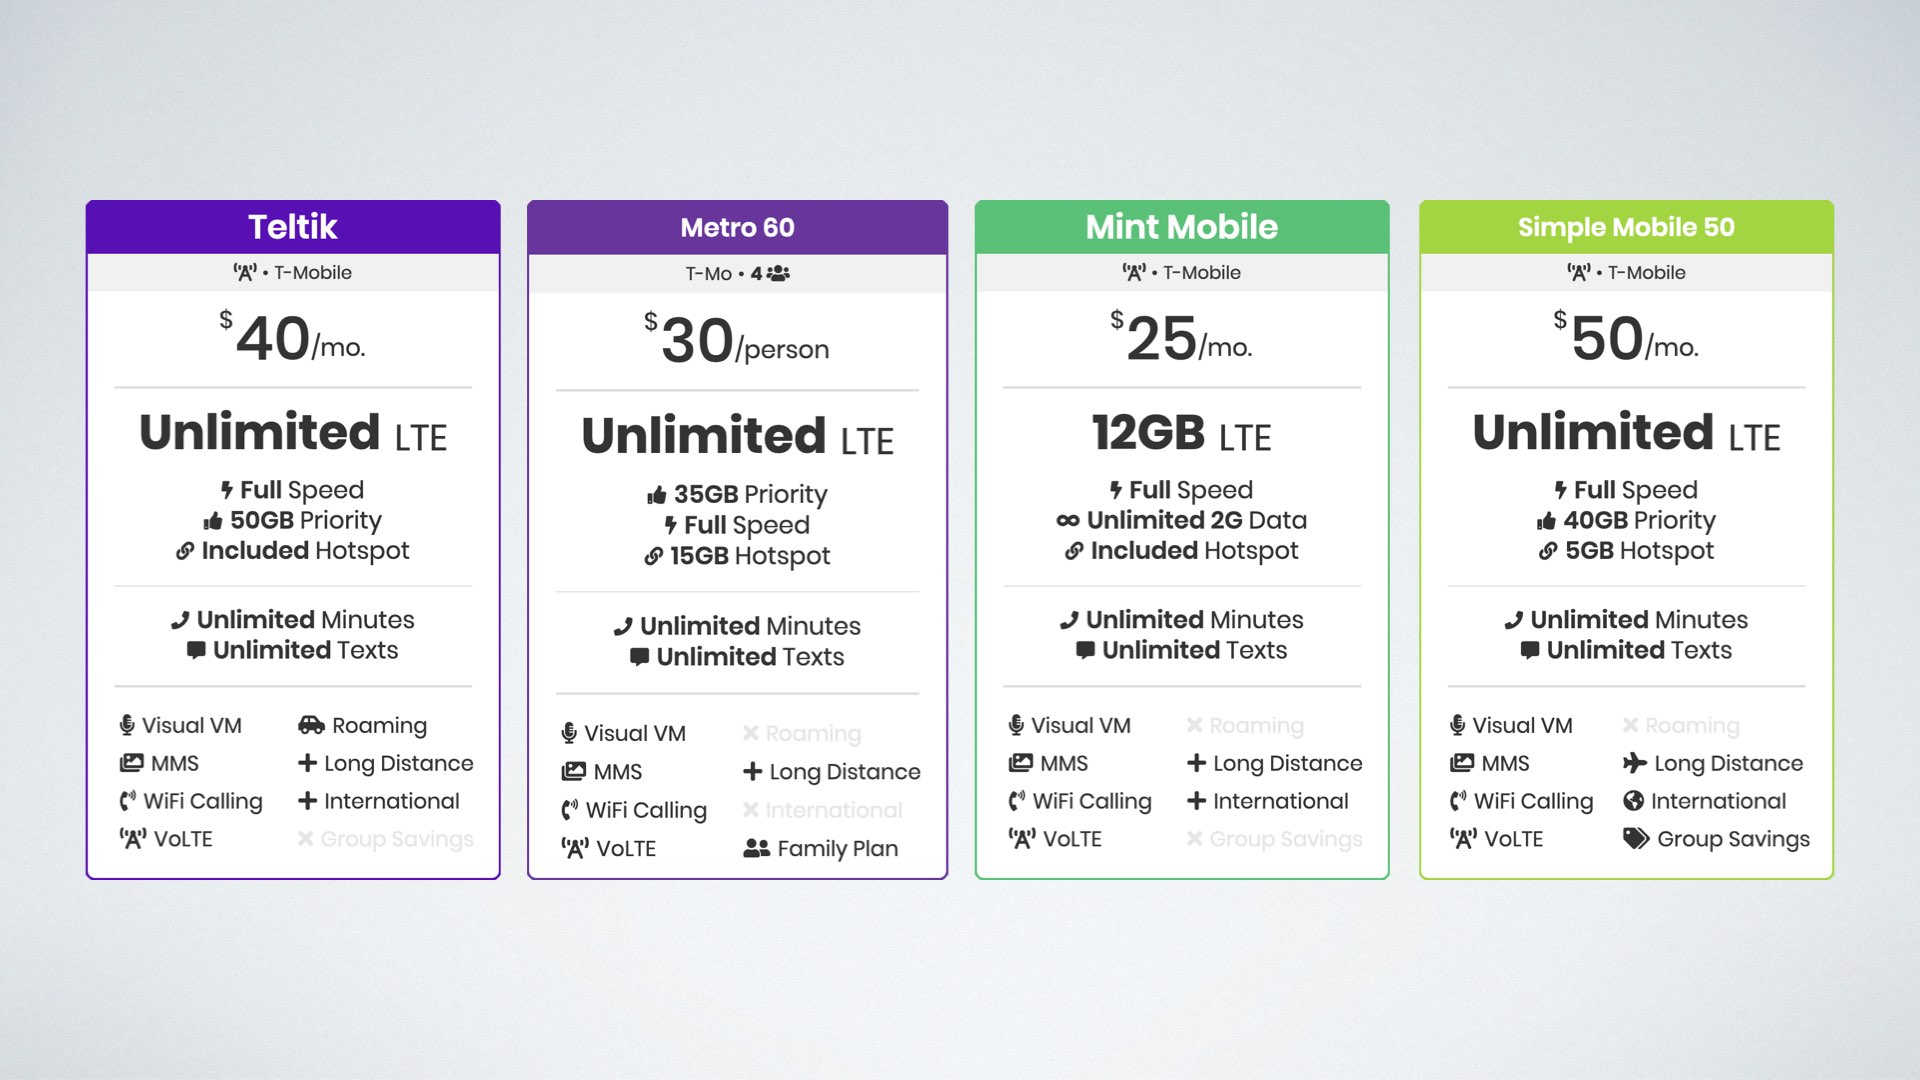 graphic of plans from Teltik, Metro by T-Mobile, Mint Mobile, and Simple Mobile